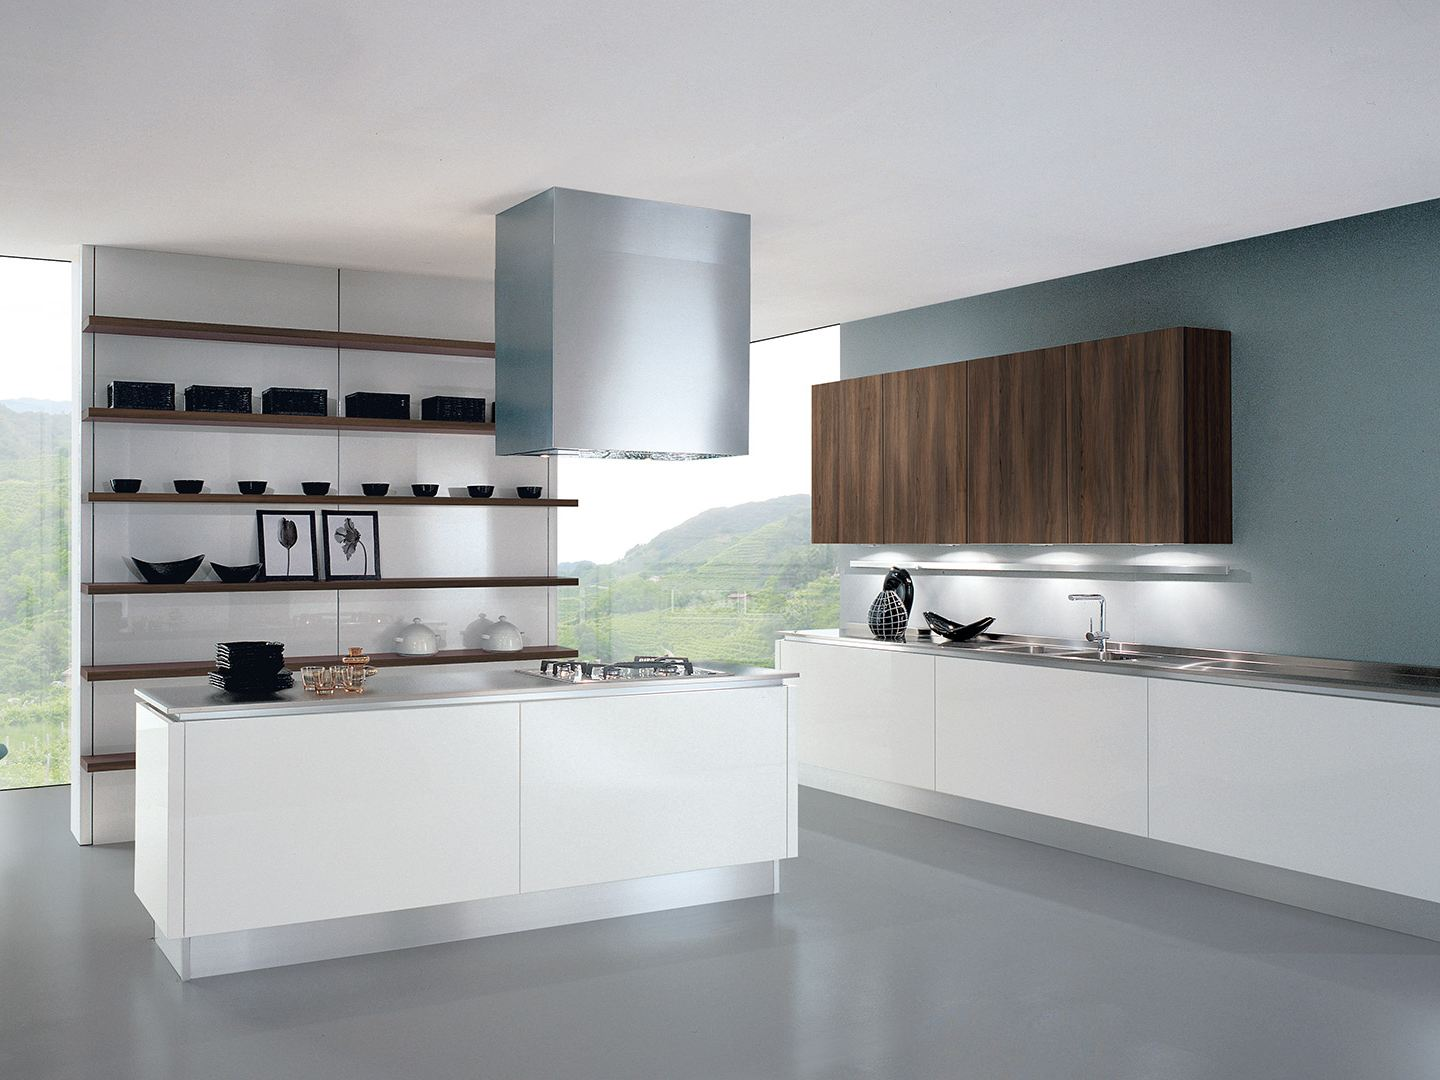 Touch cucina con isola collezione touch by oikos cucine design ...